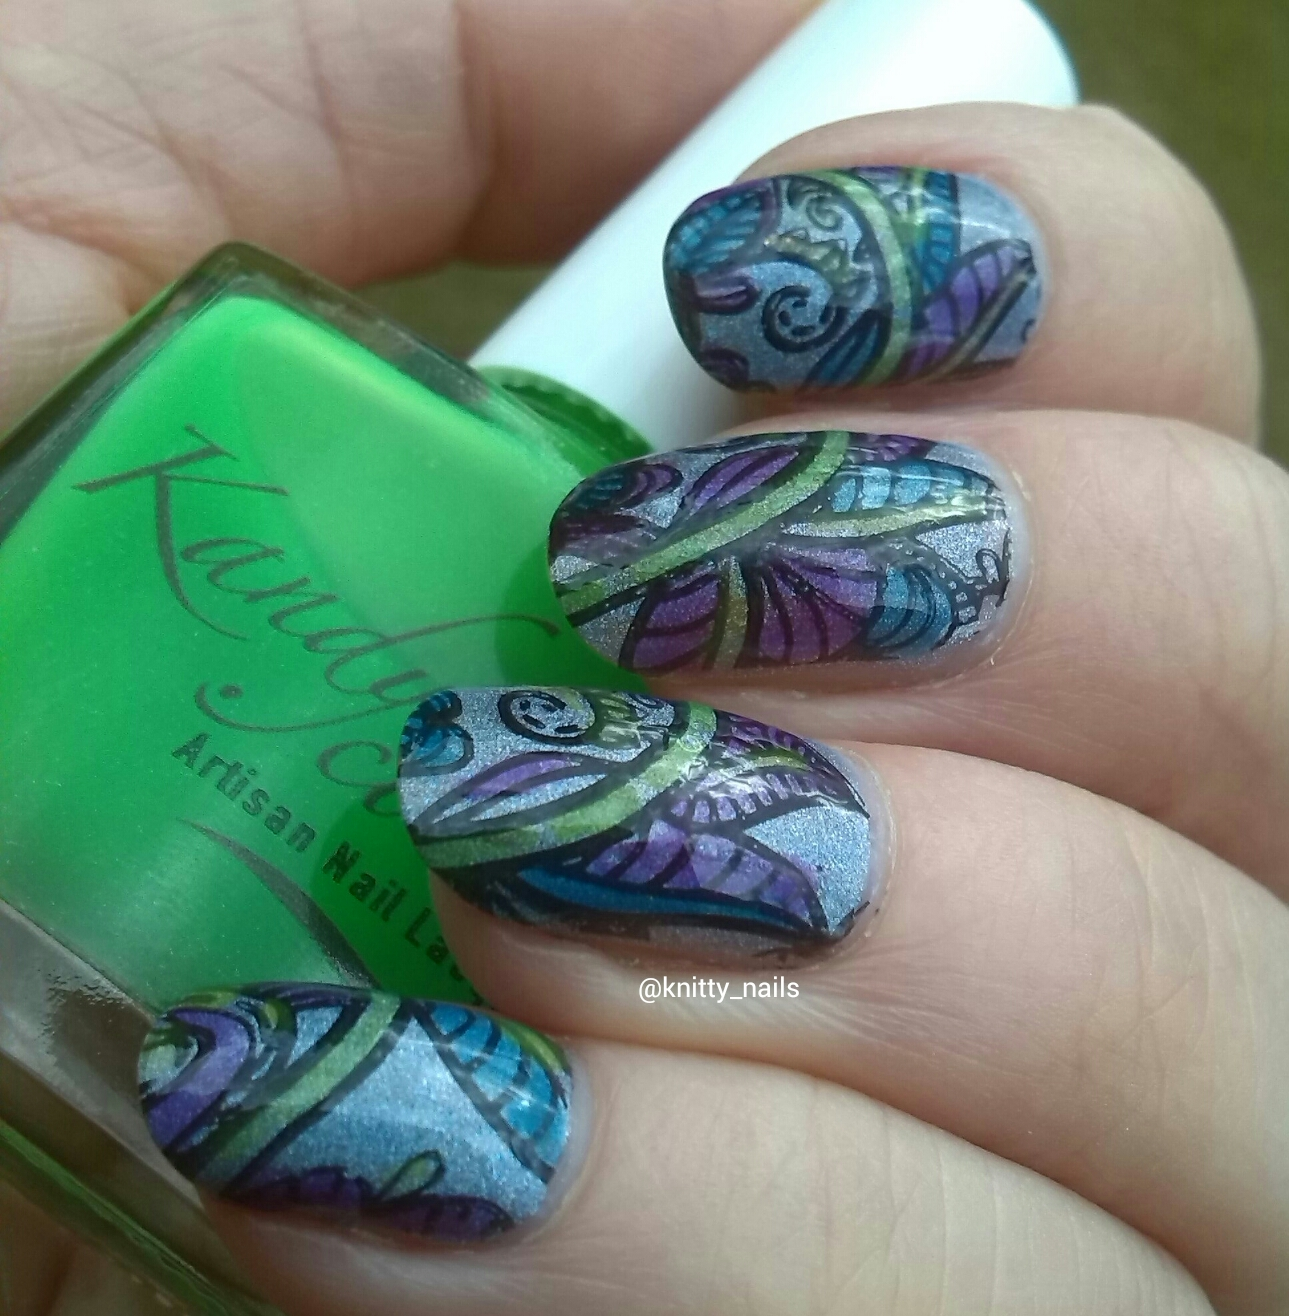 Knitty Nails: July Challenges - Holo / Leadlighting